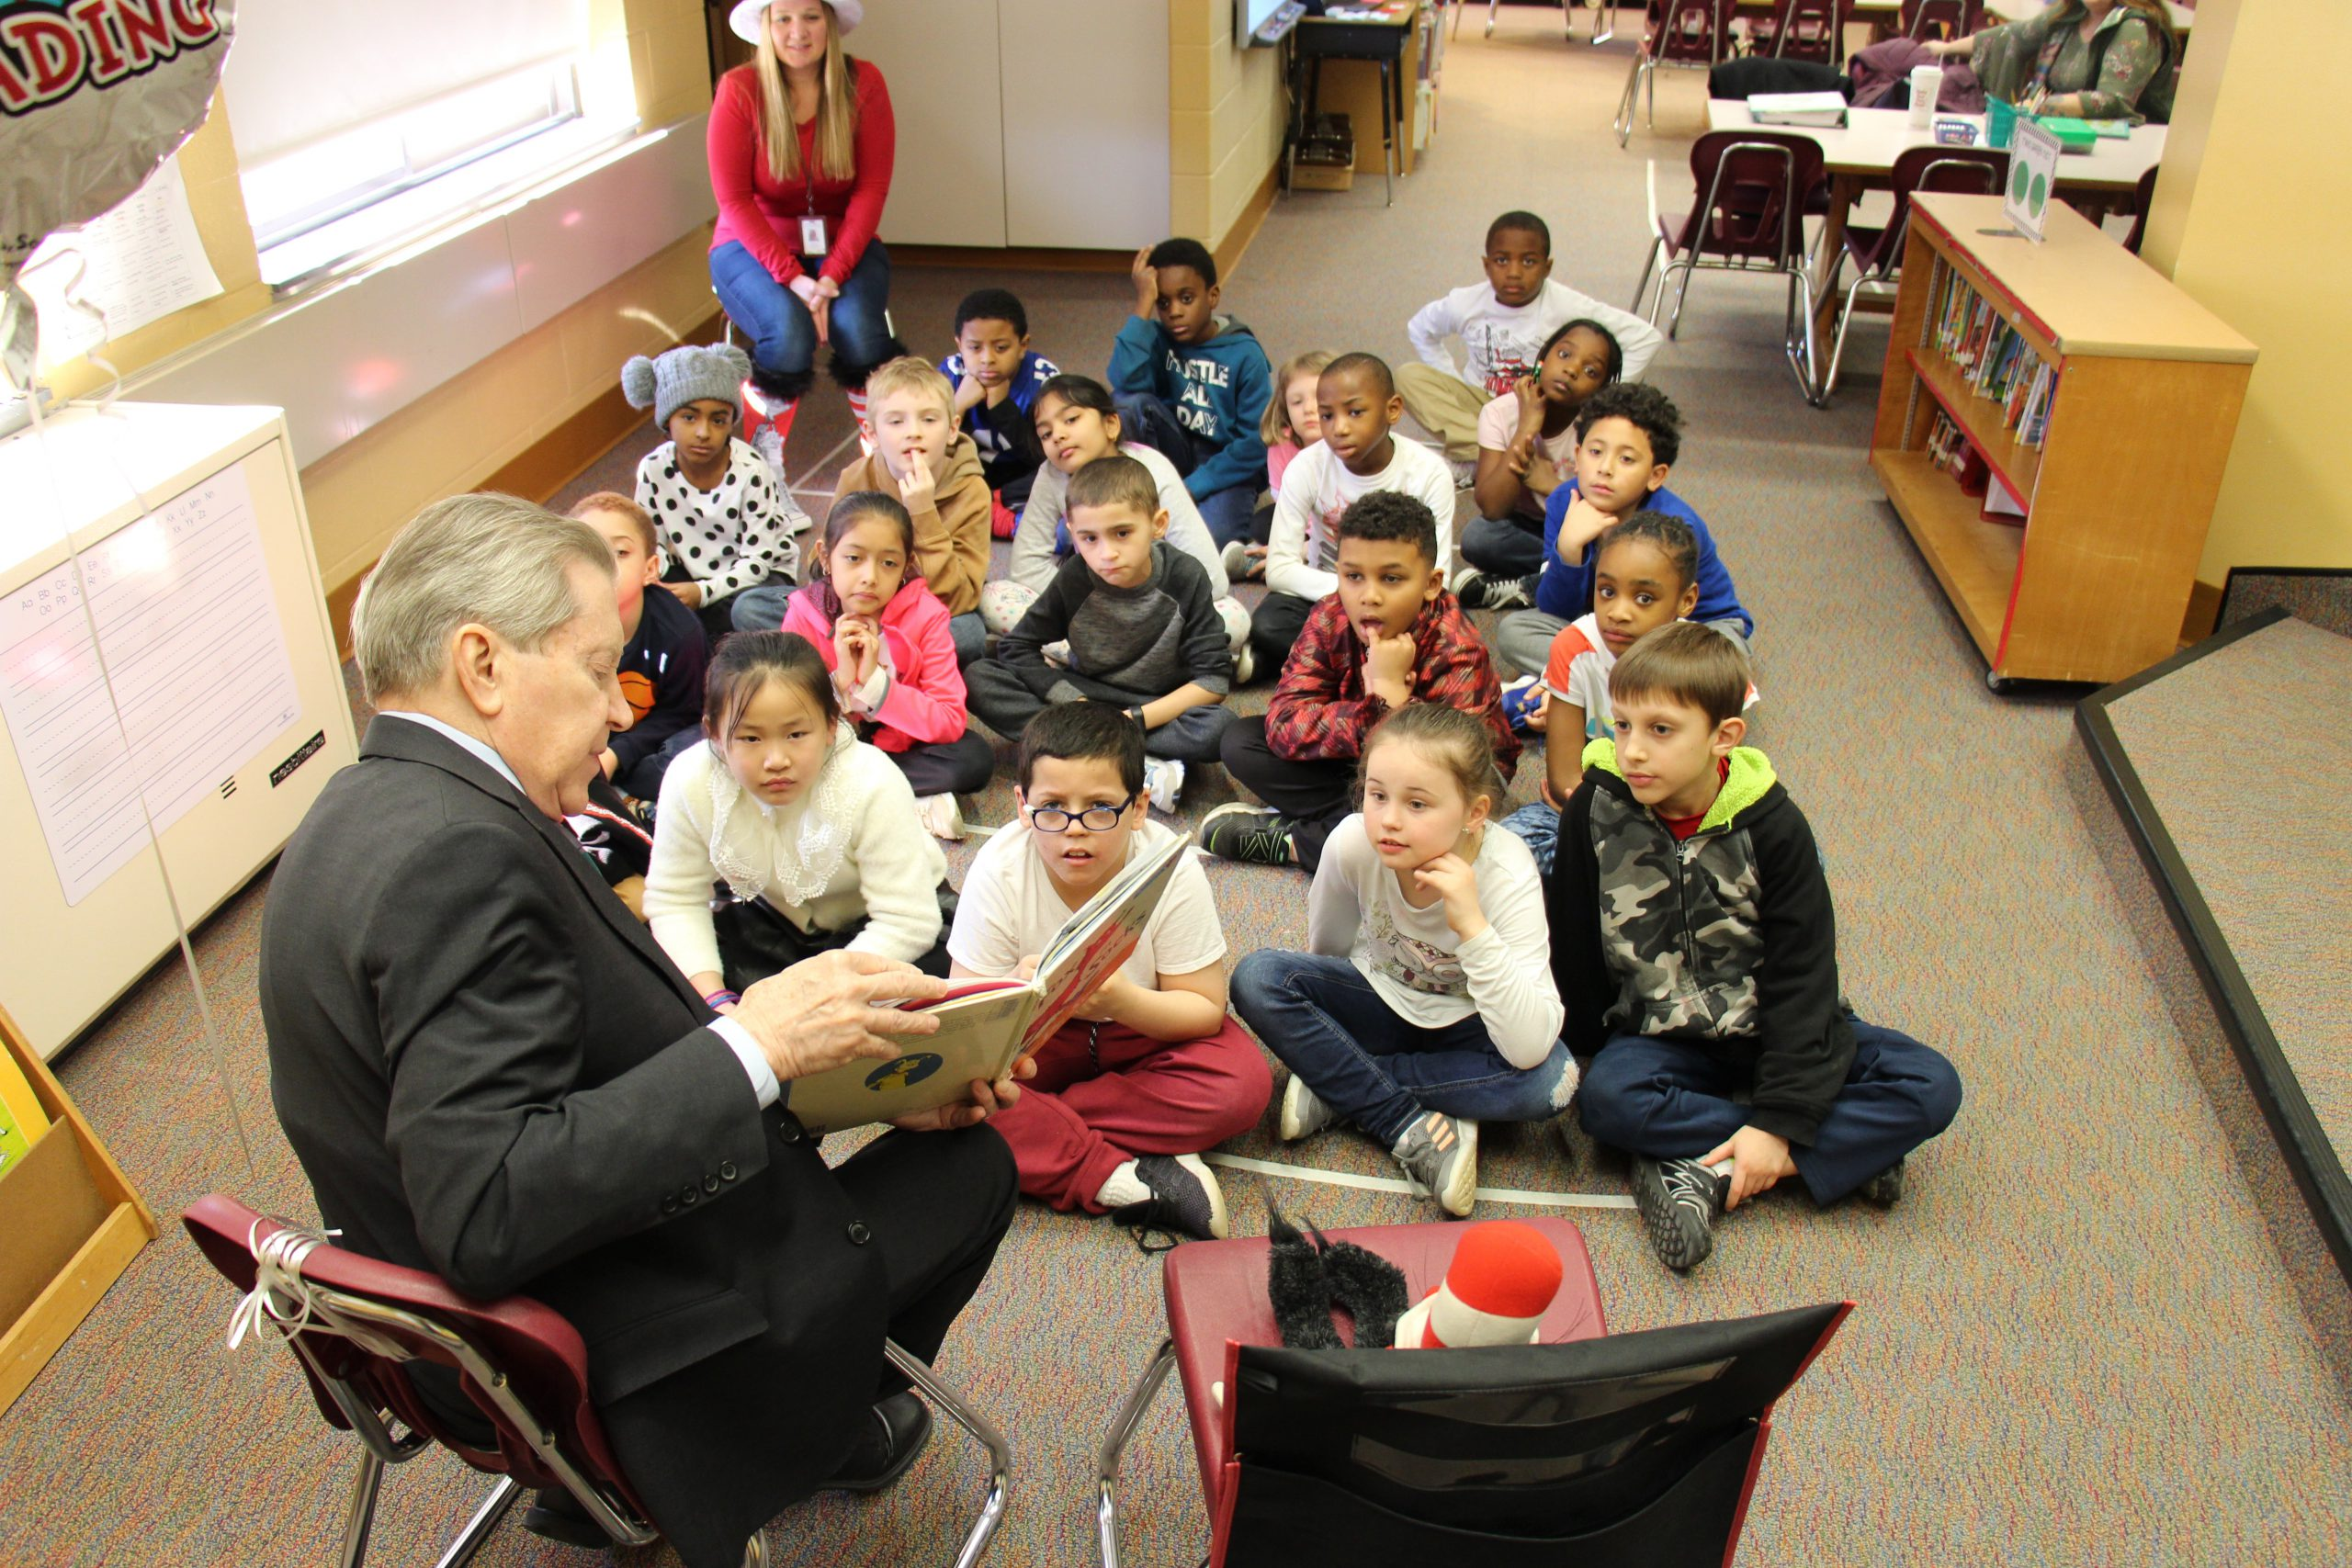 A class of second grade students sit on a rug in the library and listen as a man reads Fox in Sox to them.